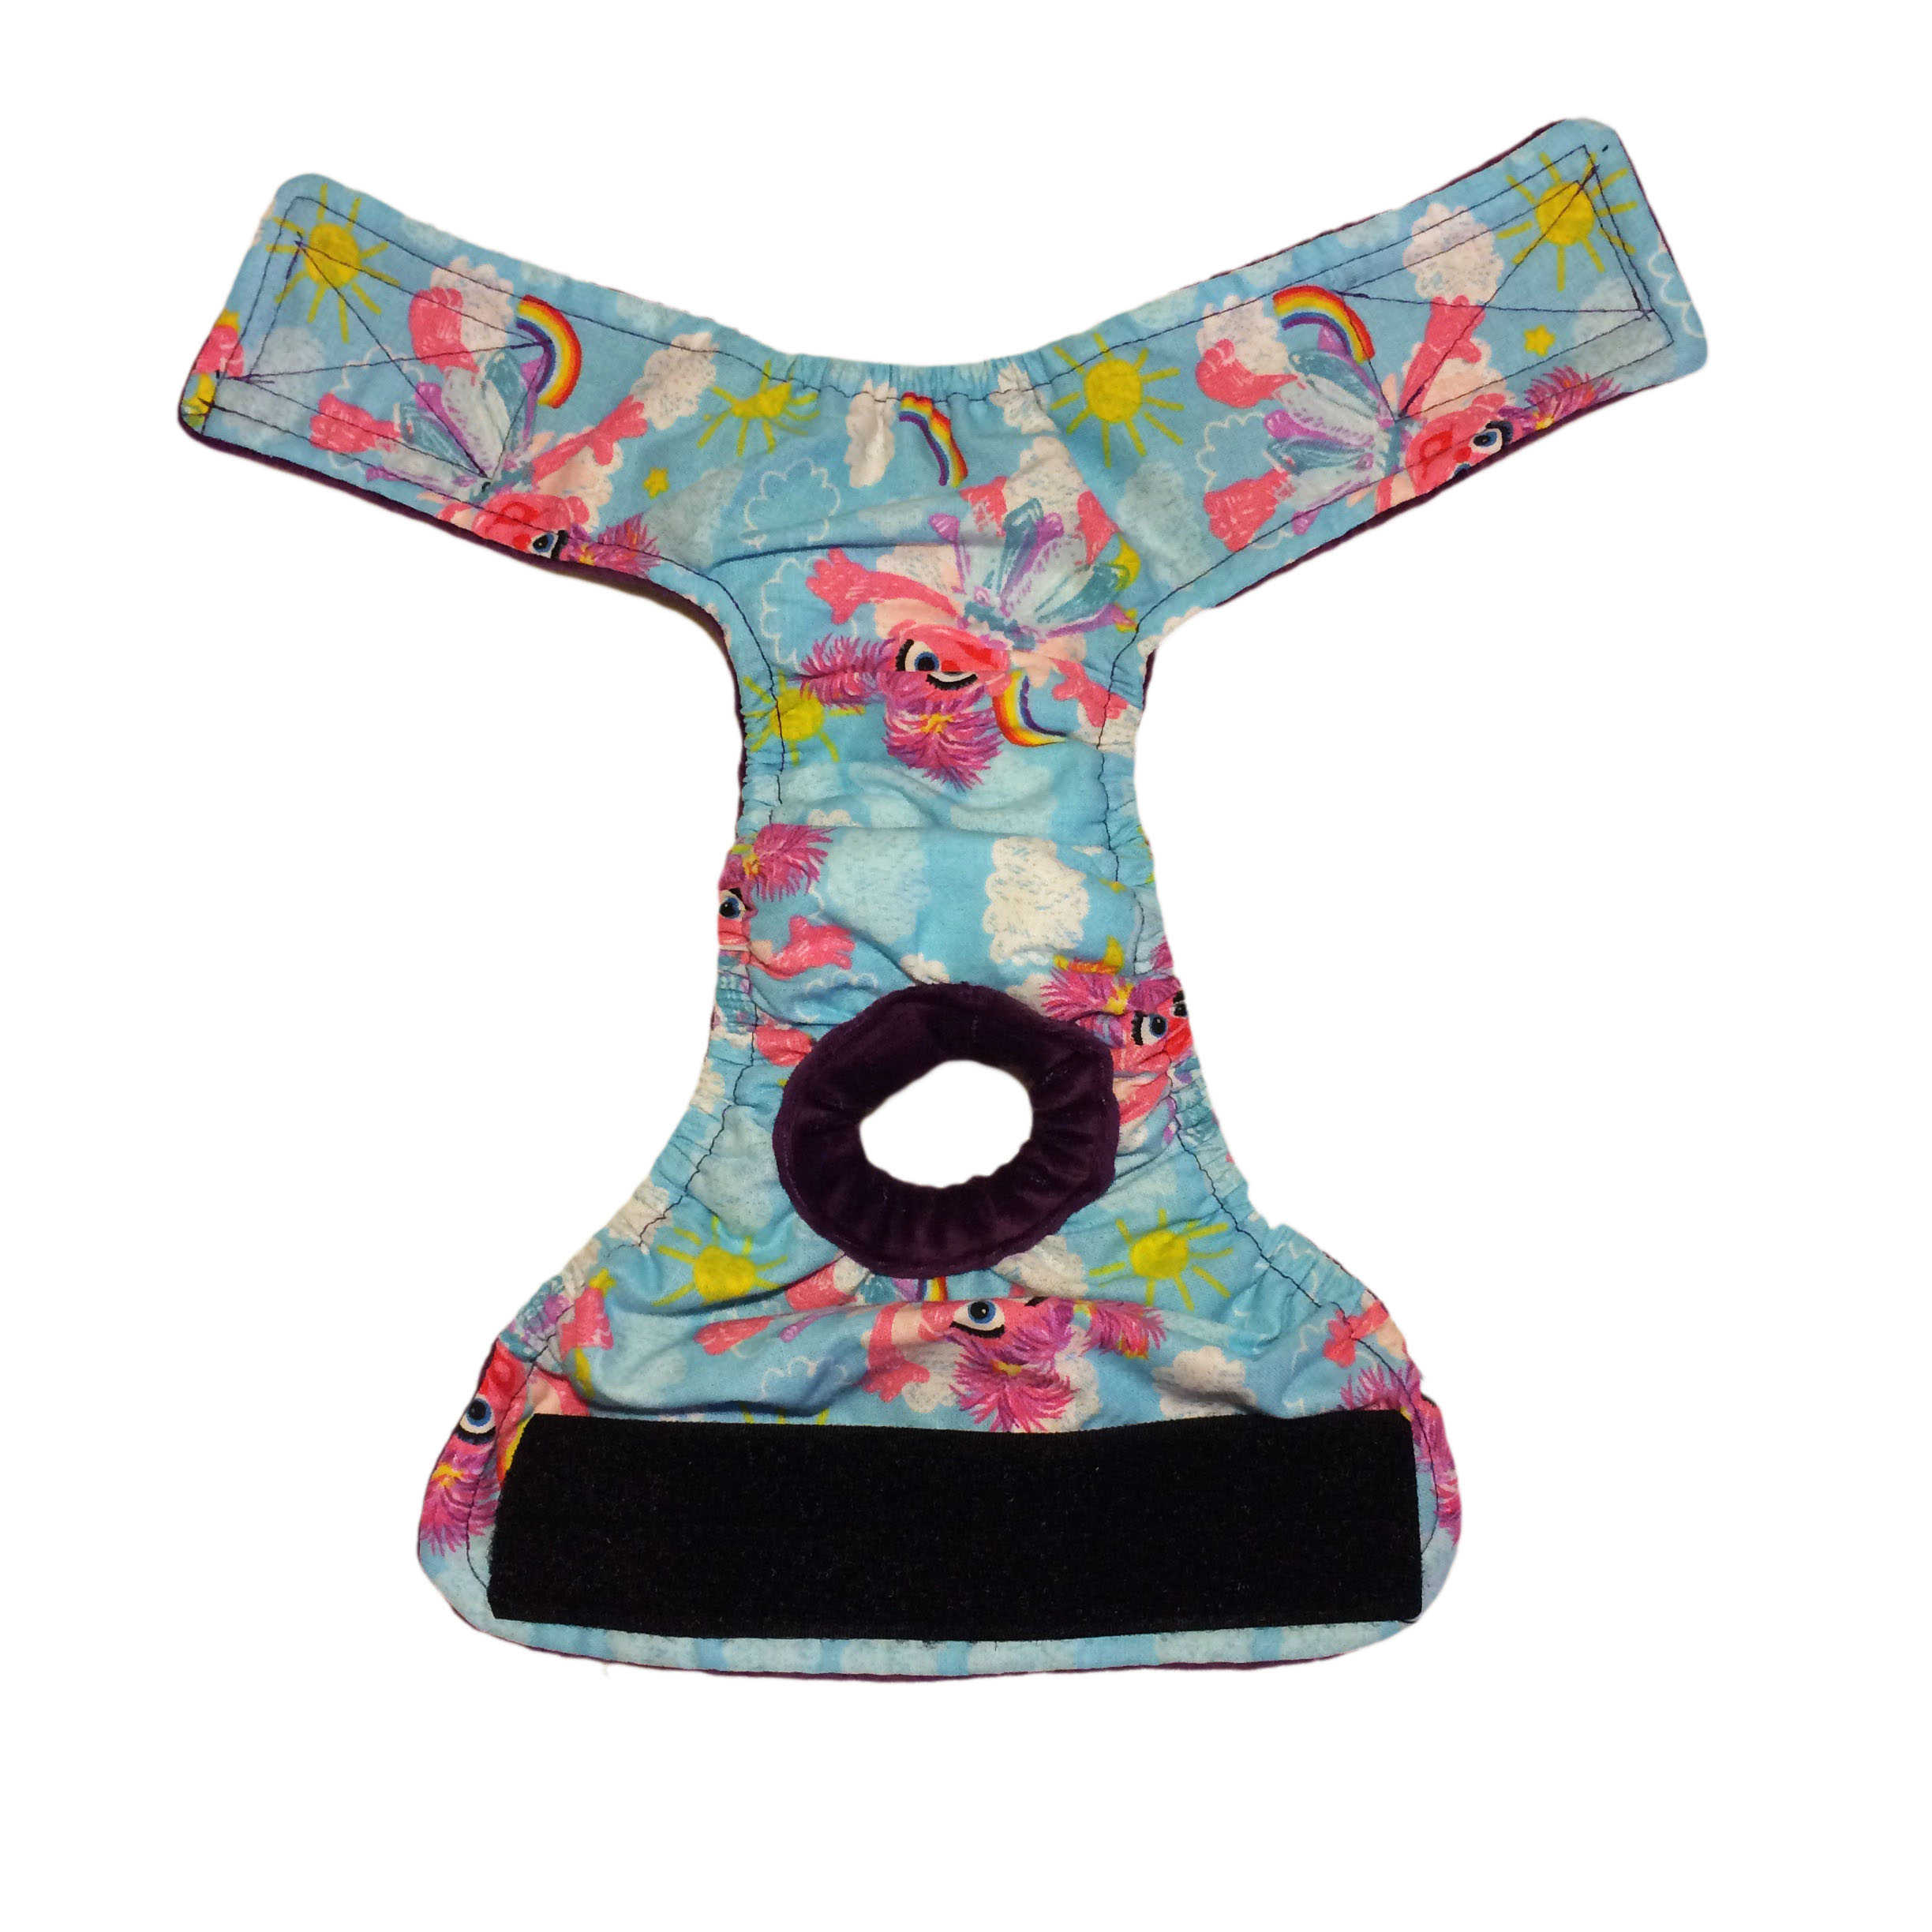 Barkertime Dog Washable Dog Diaper Made From Abby Cadabby